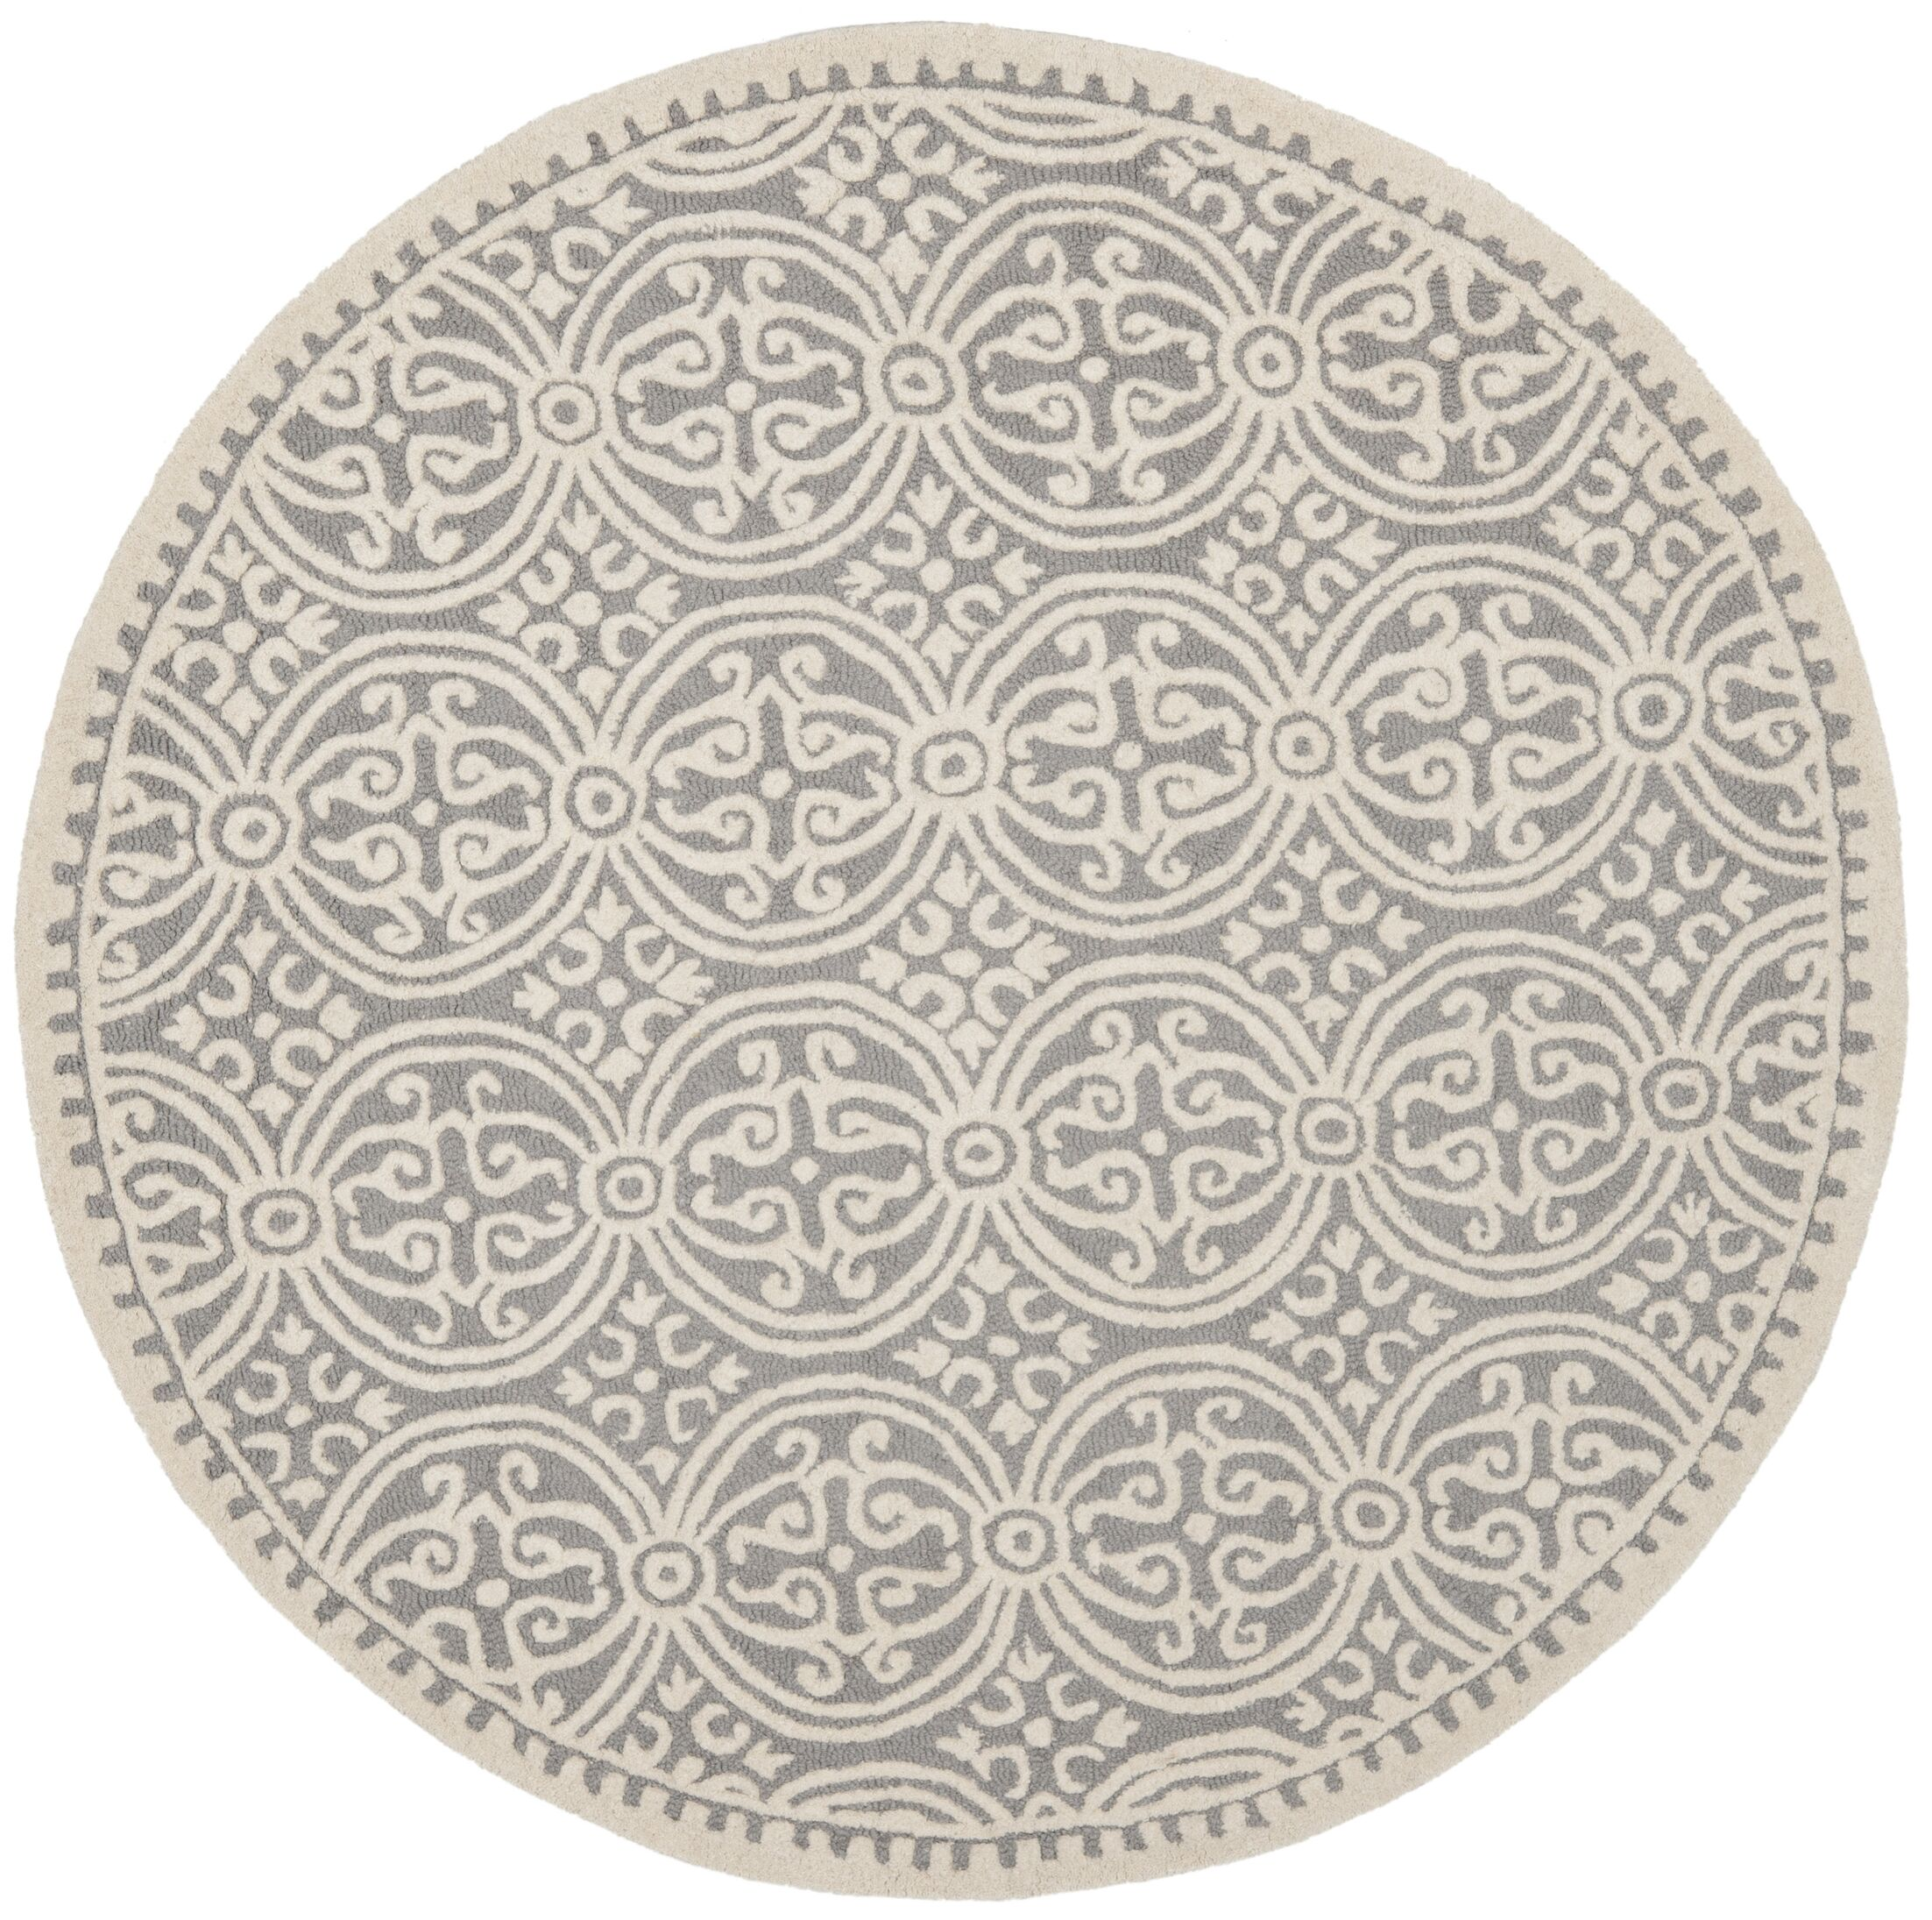 Landen Hand-Tufted Silver/Ivory Area Rug Rug Size: Round 8'